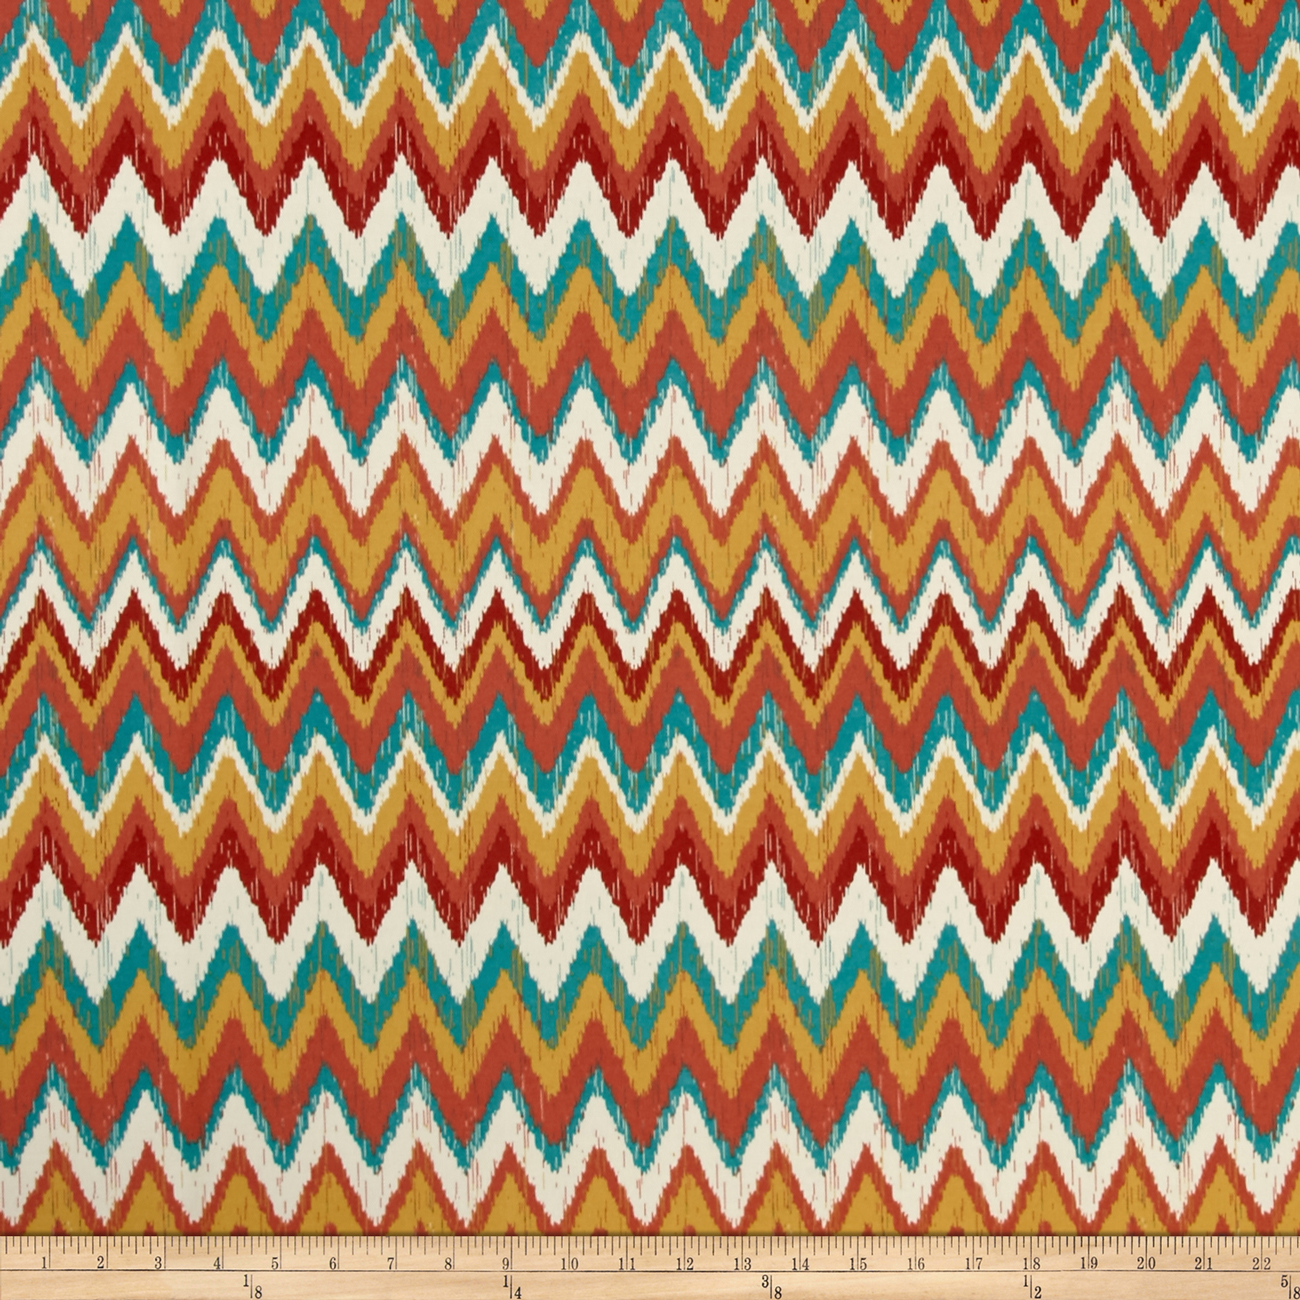 Terrasol Indoor/Outdoor Pulse Sienna Fabric by Tempro in USA